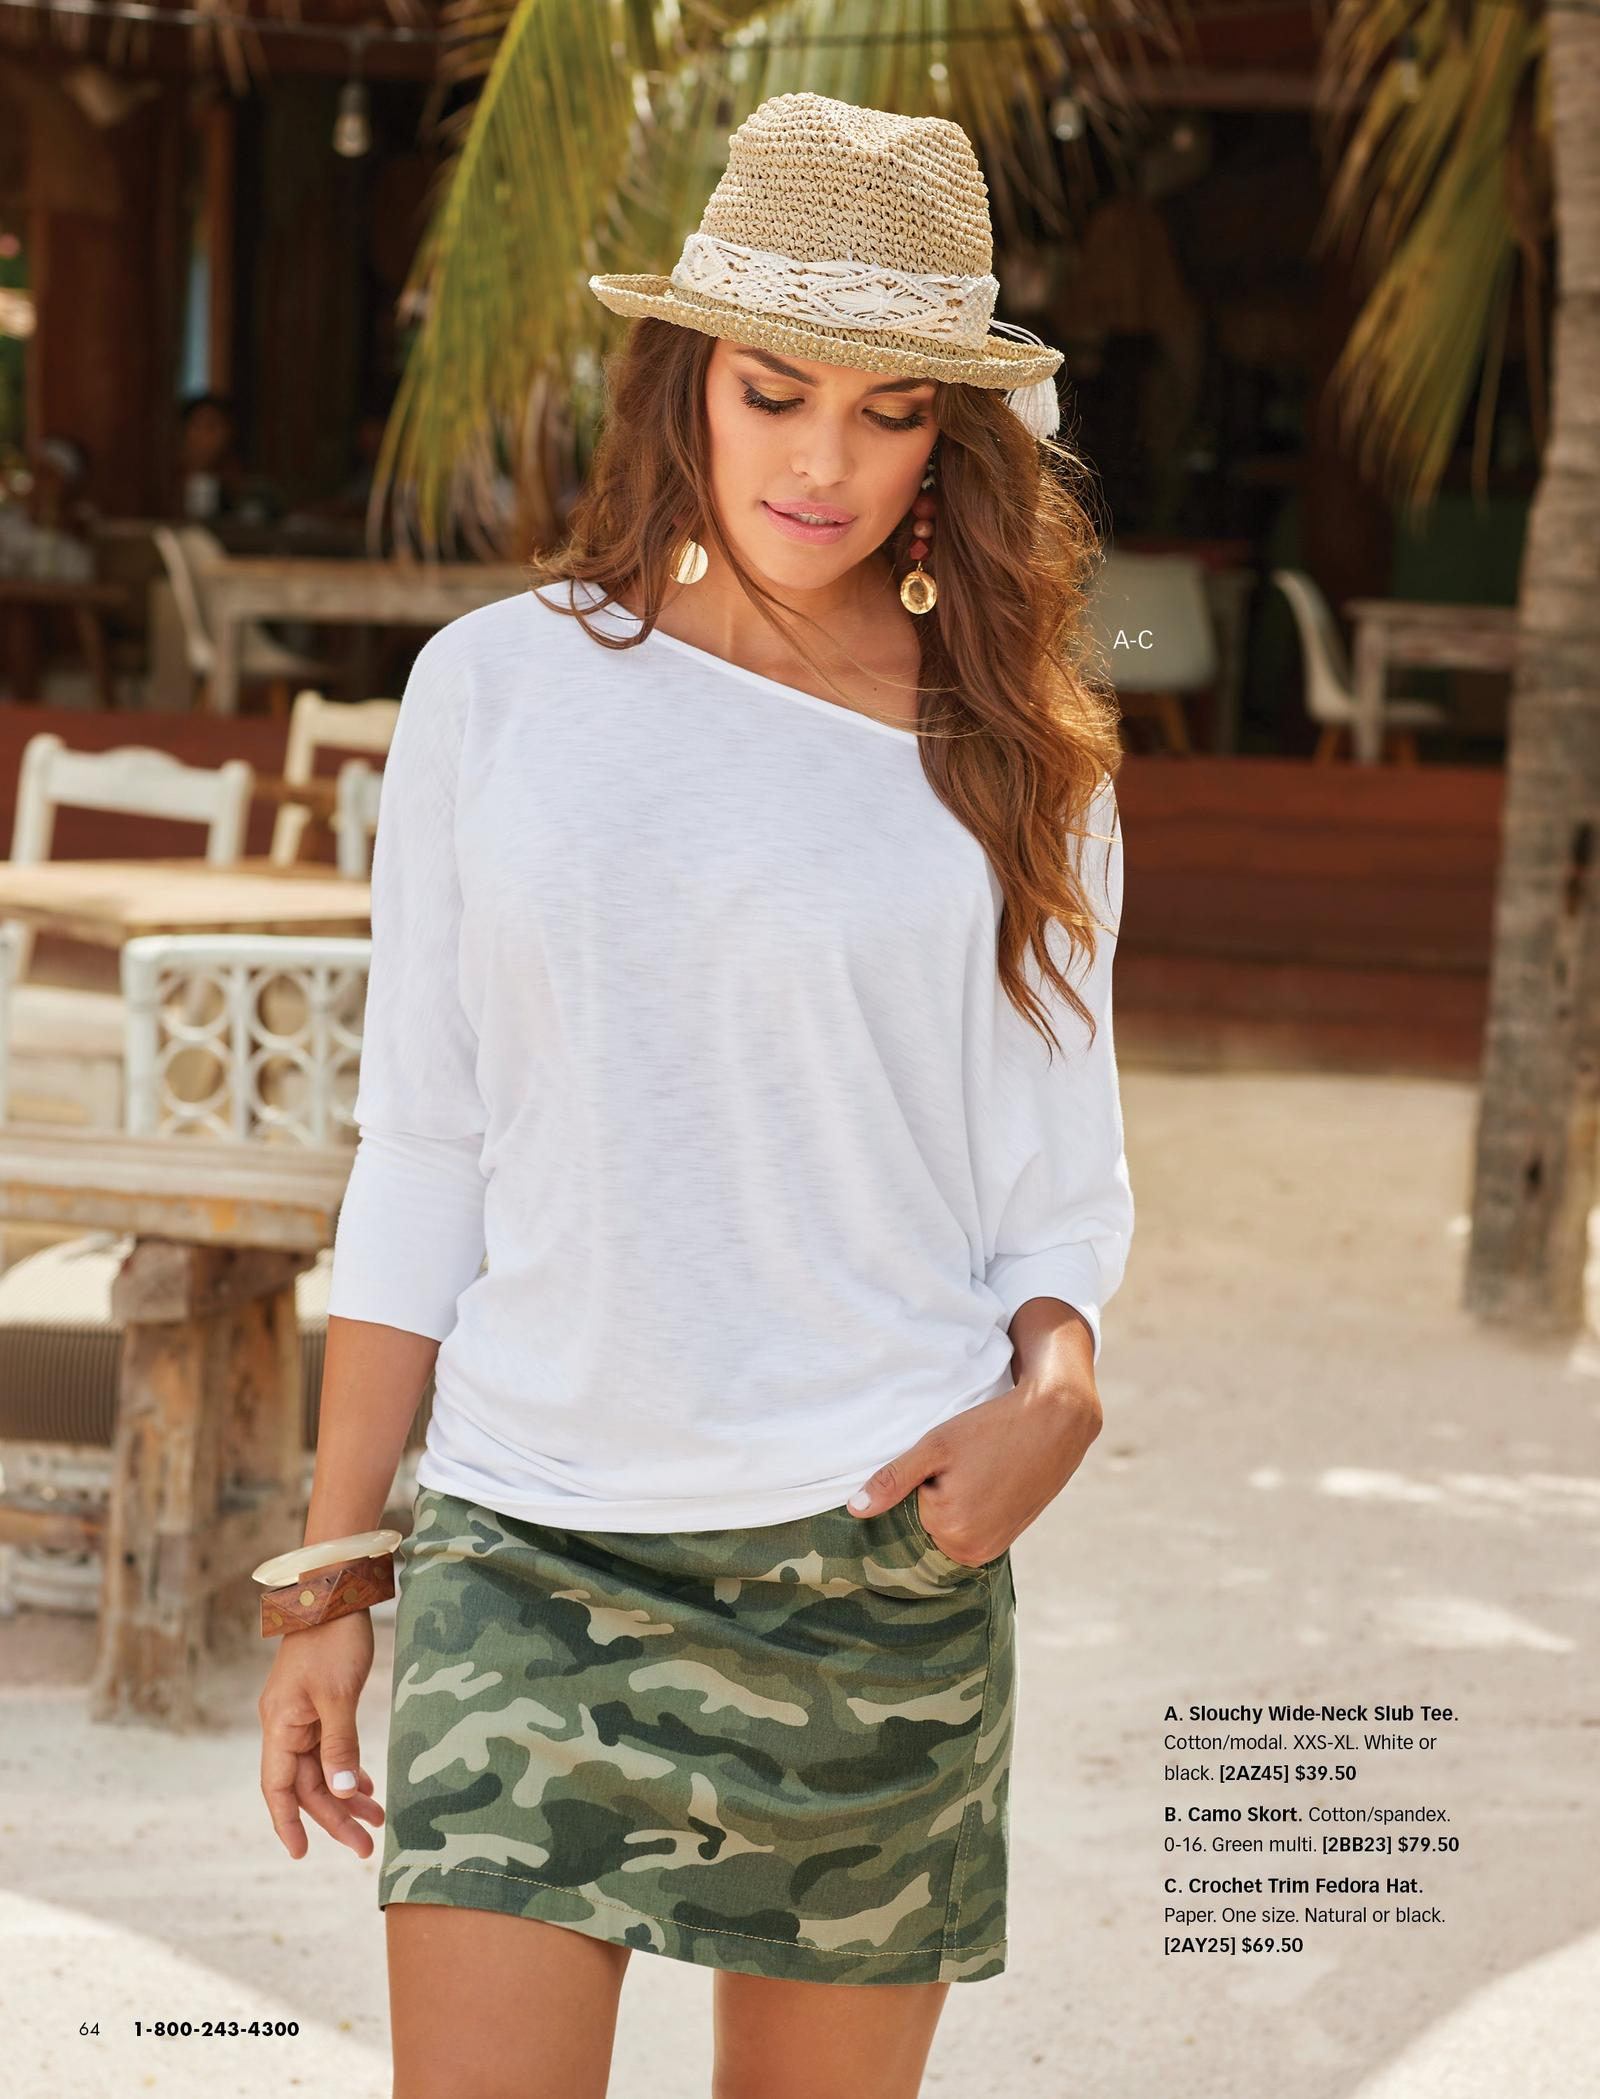 model wearing a white off-the-shoulder long-sleeve top, straw hat with white lace detail, and camo skort.